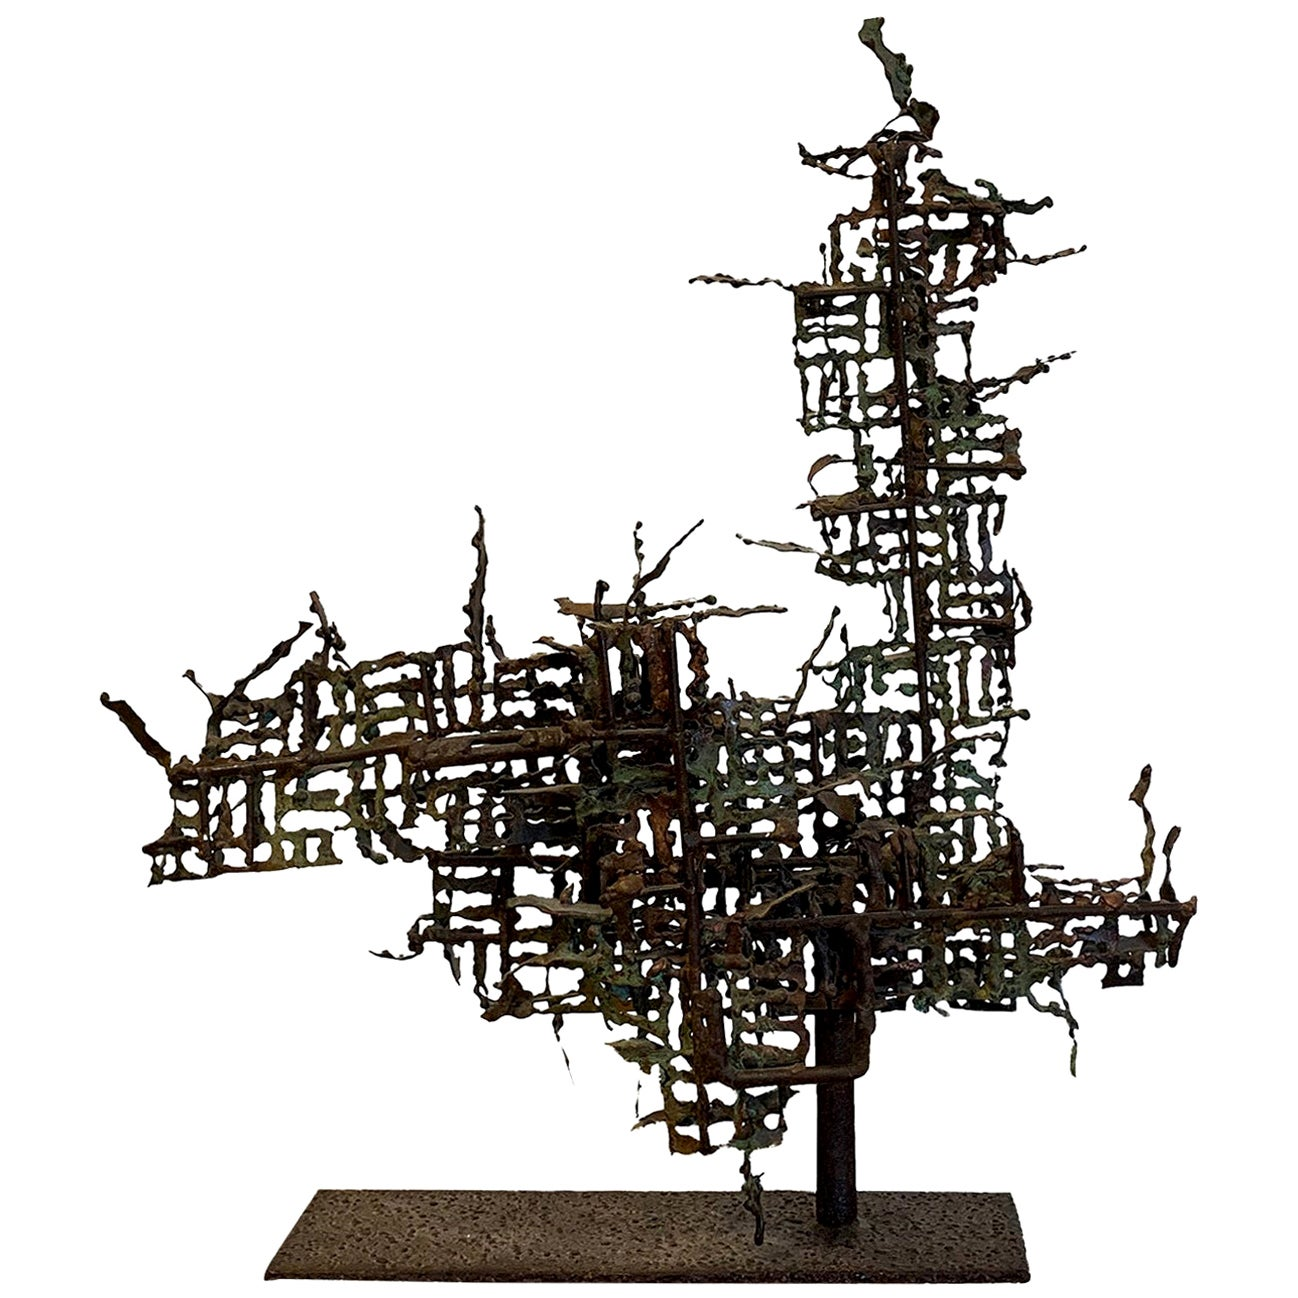 20th Century Italian Abstract Metal Sculpture by Marcello Fantoni